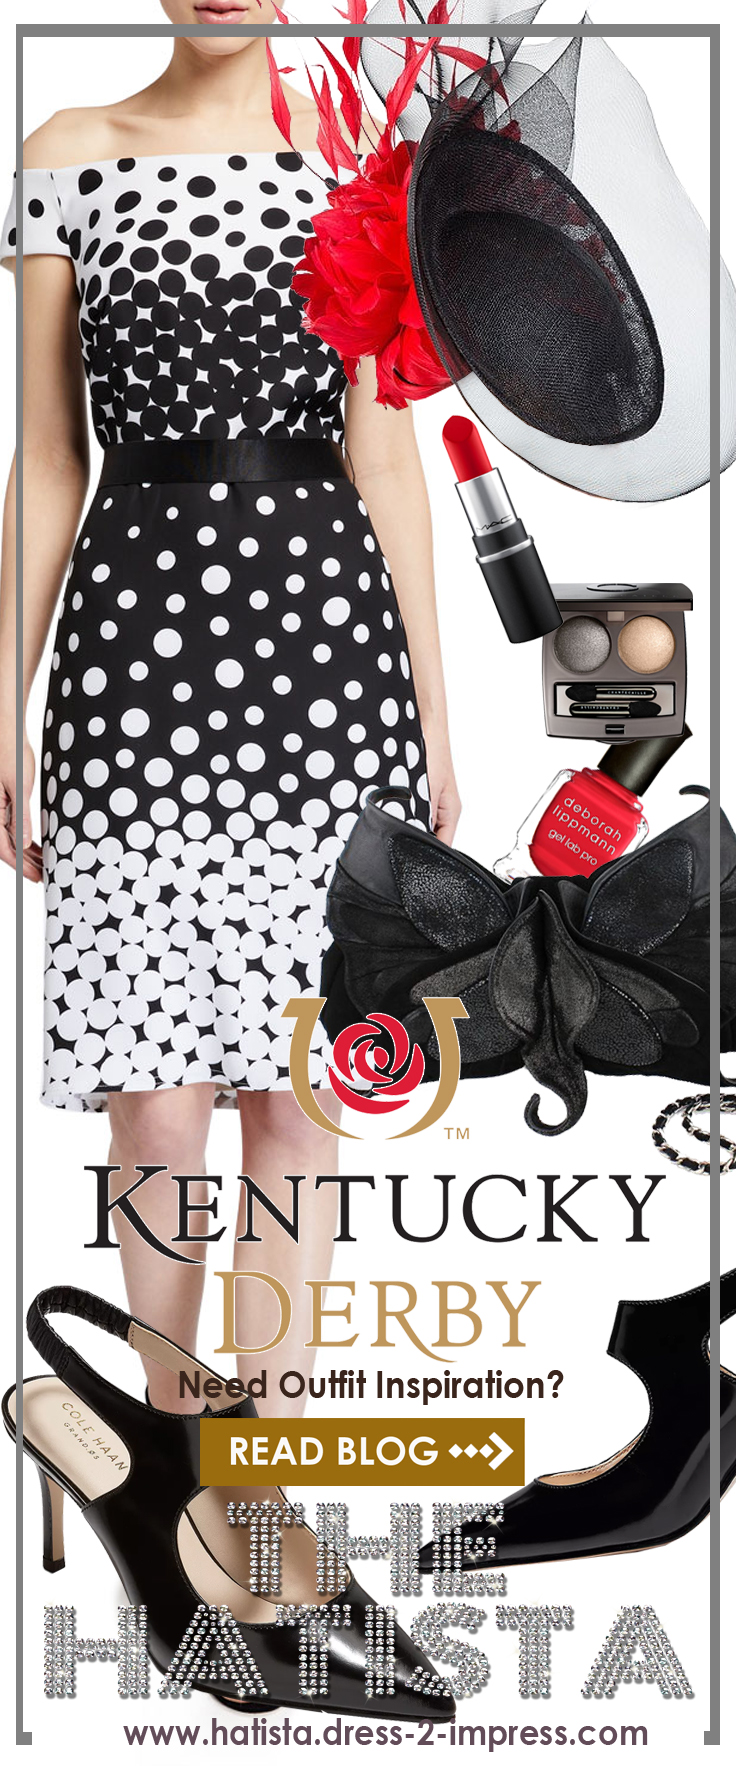 Kentucky Derby outfit ideas 2021. What to wear for the Kentucky Derby 2021. Kentucky Derby Fashion Guide 2021. Kentucky Derby Dresses 2021. Kentucky Derby Hats 2021. #kentuckyderby #ootd #outfitideas